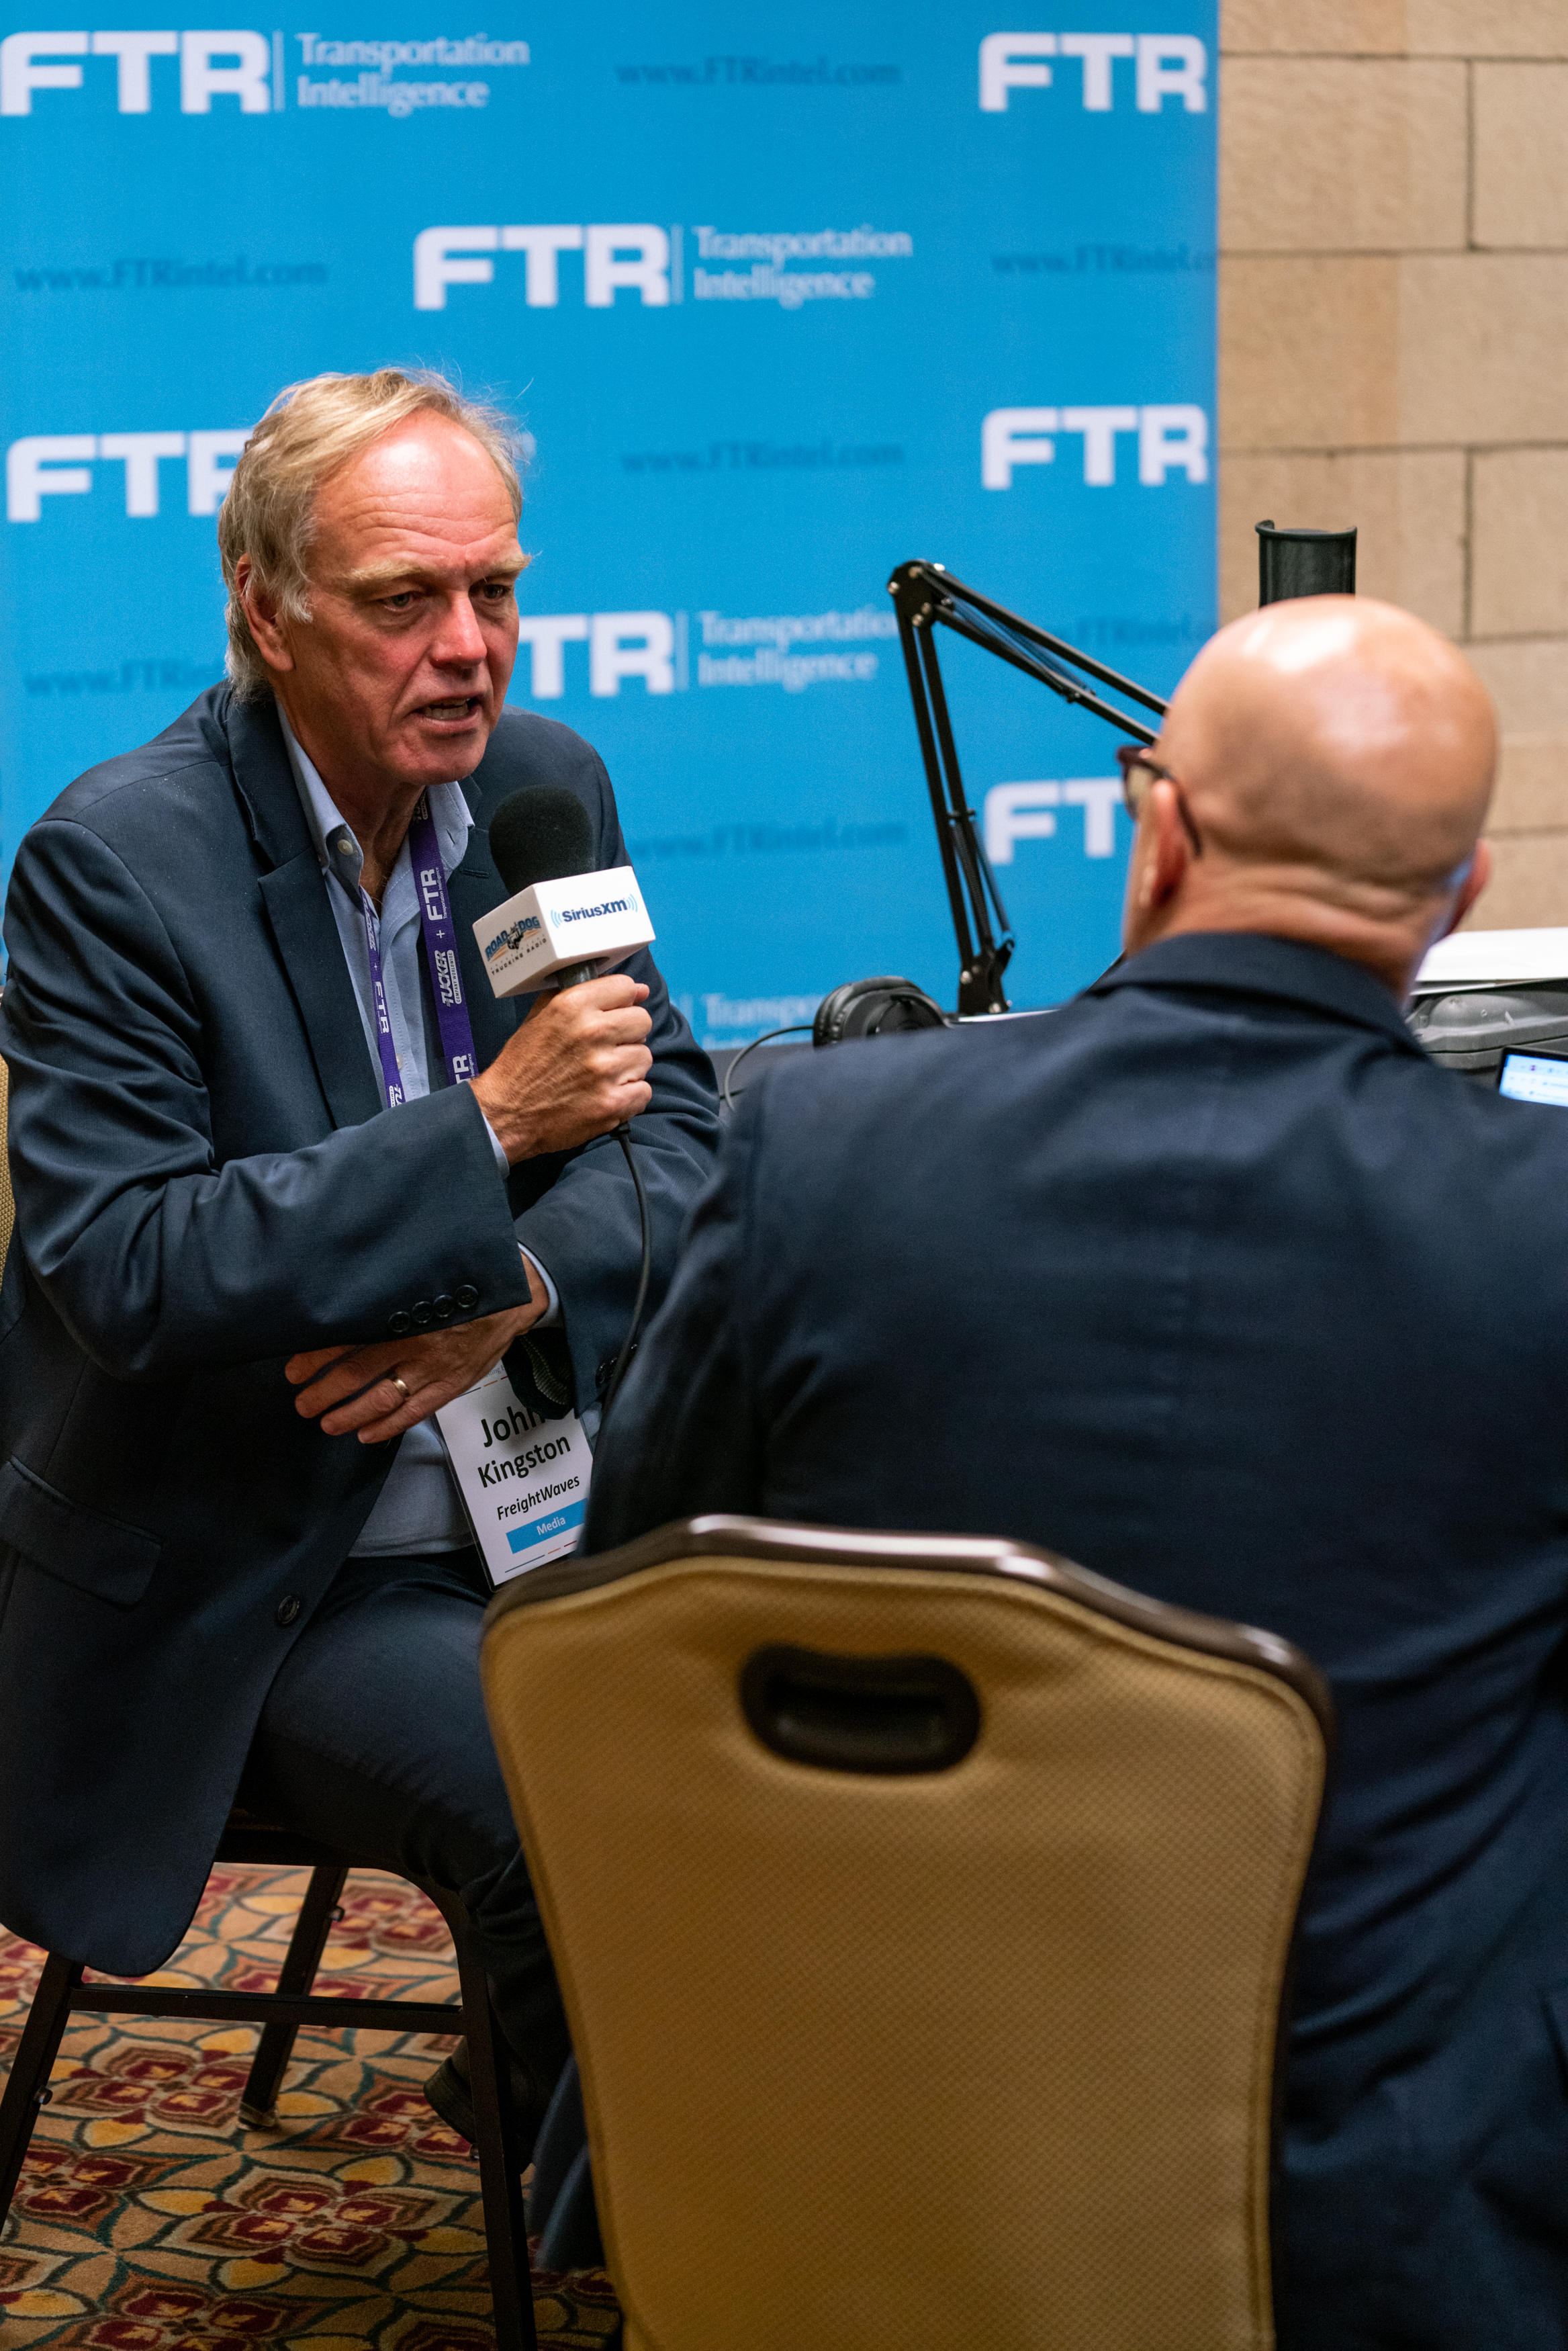 FTR-Conference-2019-PodcastRoom-8